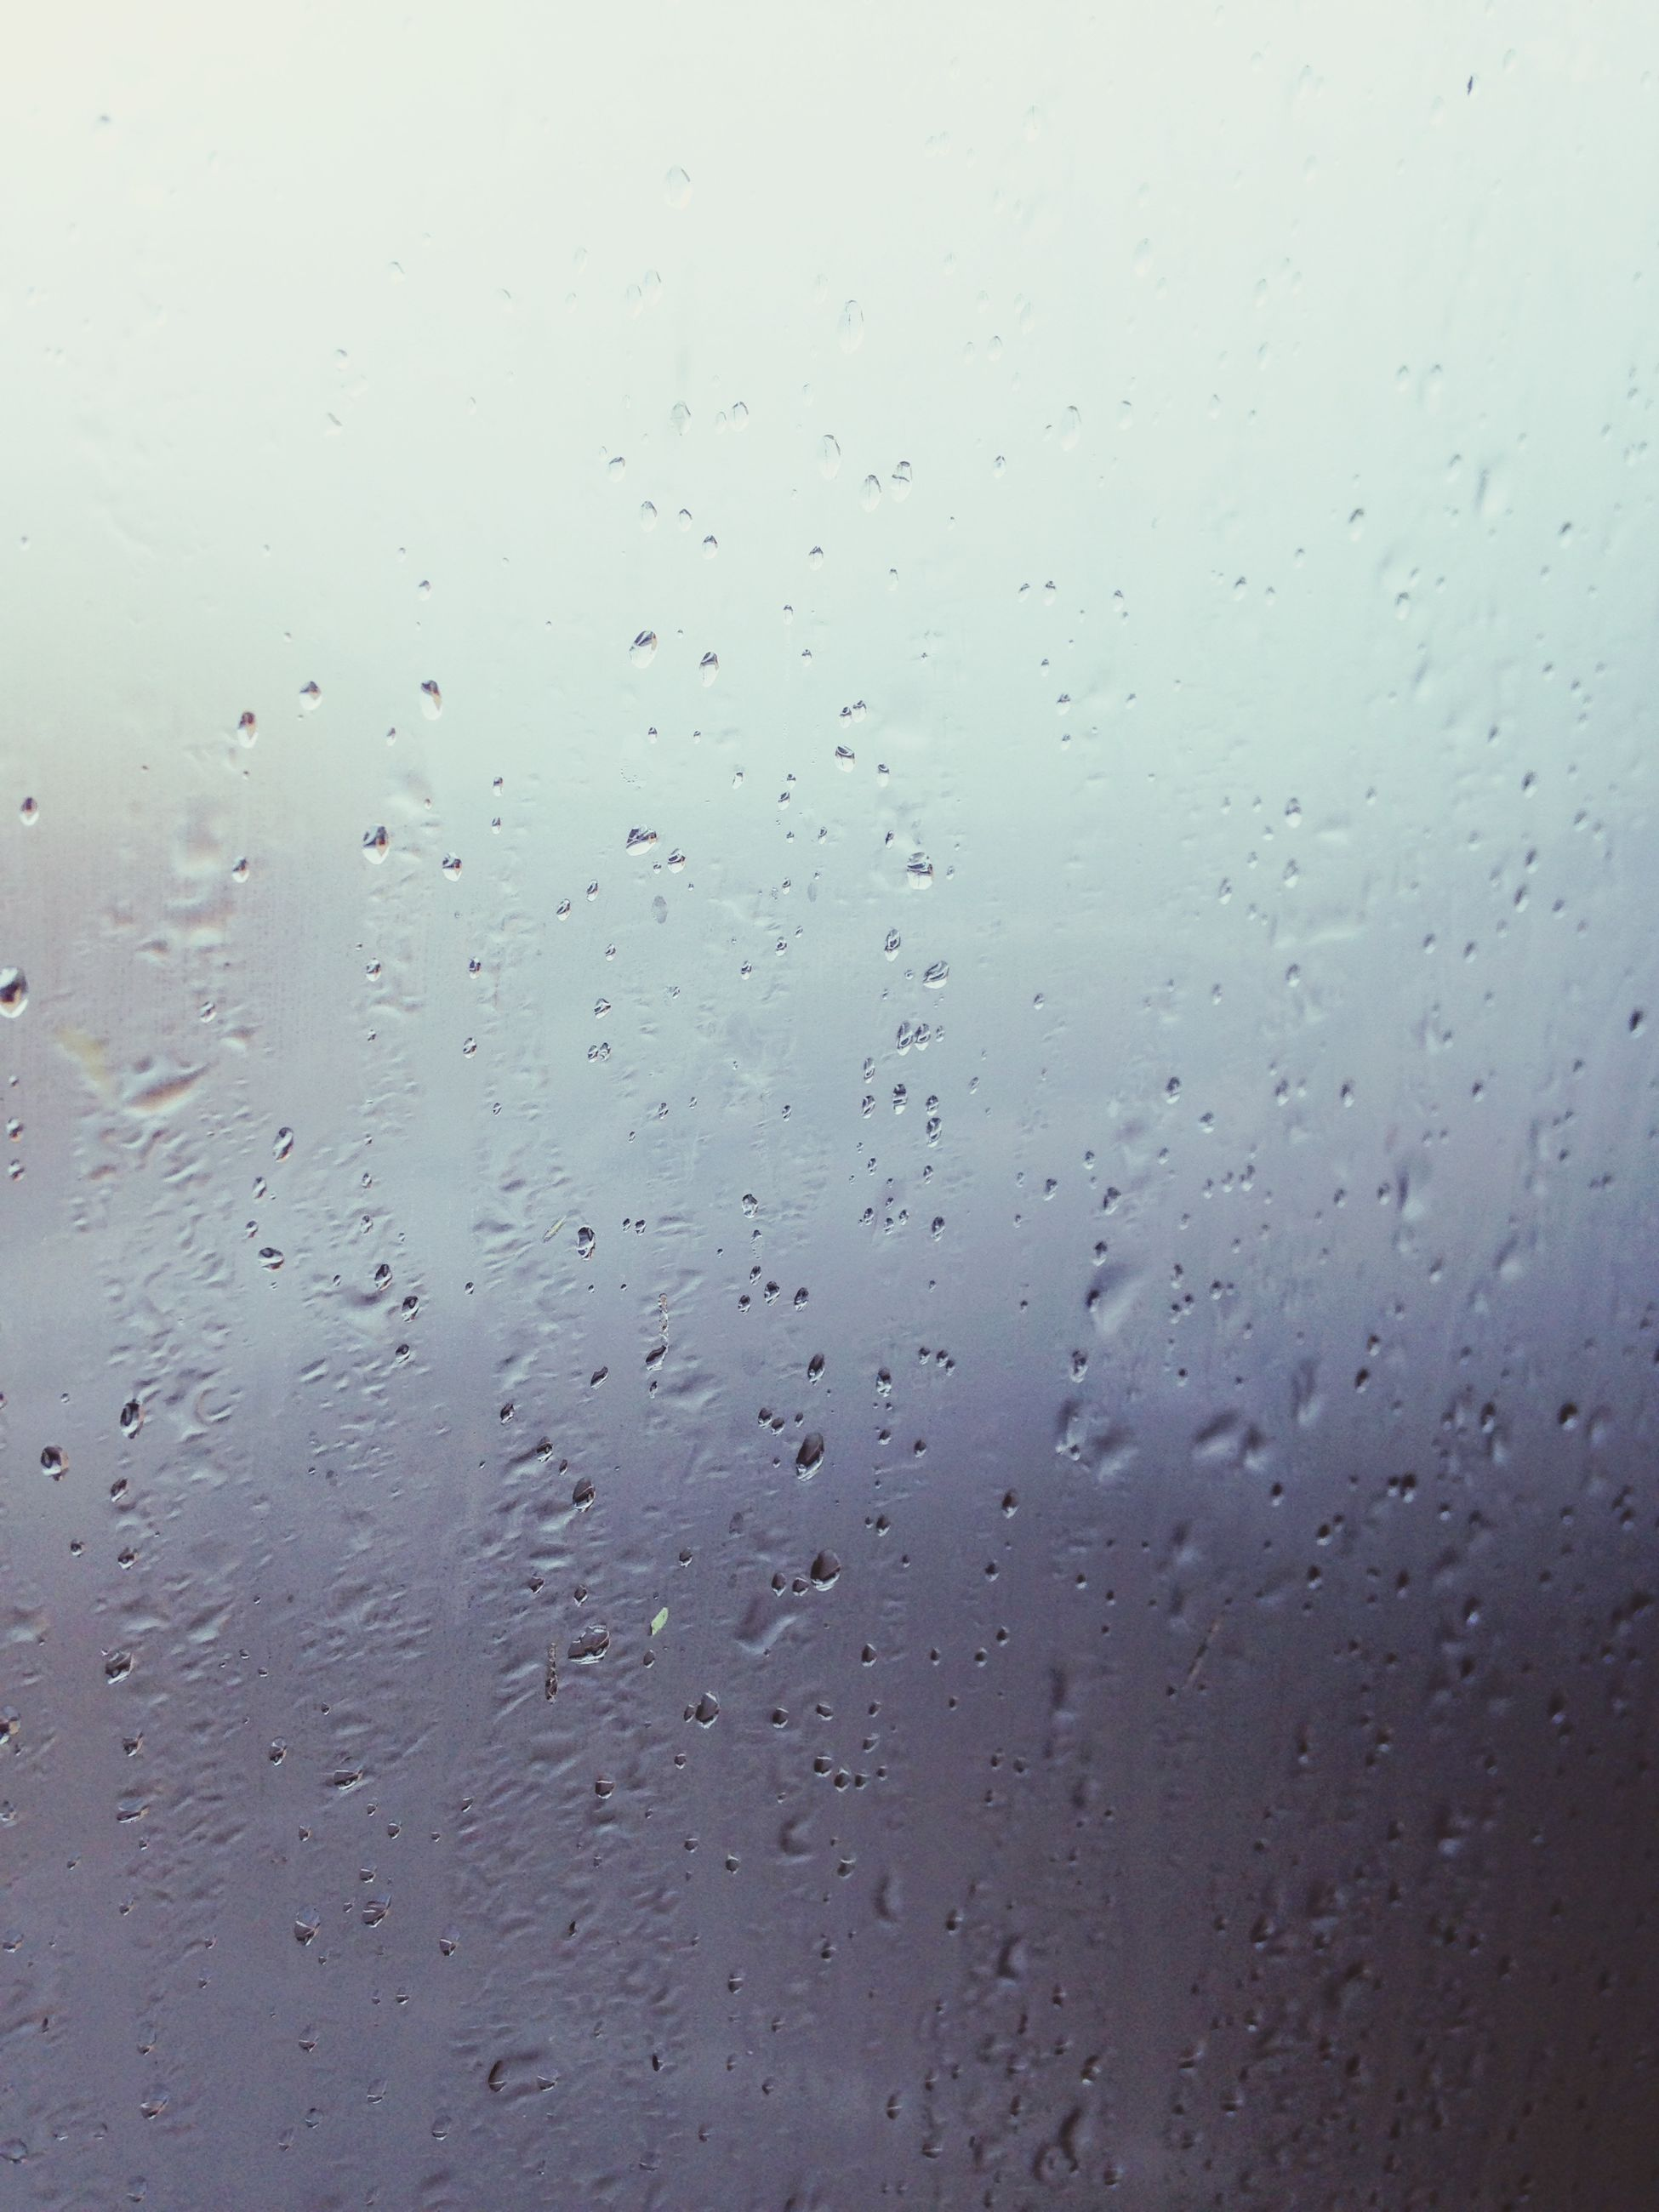 drop, wet, window, water, transparent, rain, glass - material, weather, sky, raindrop, indoors, backgrounds, full frame, season, glass, close-up, focus on foreground, water drop, droplet, cloud - sky